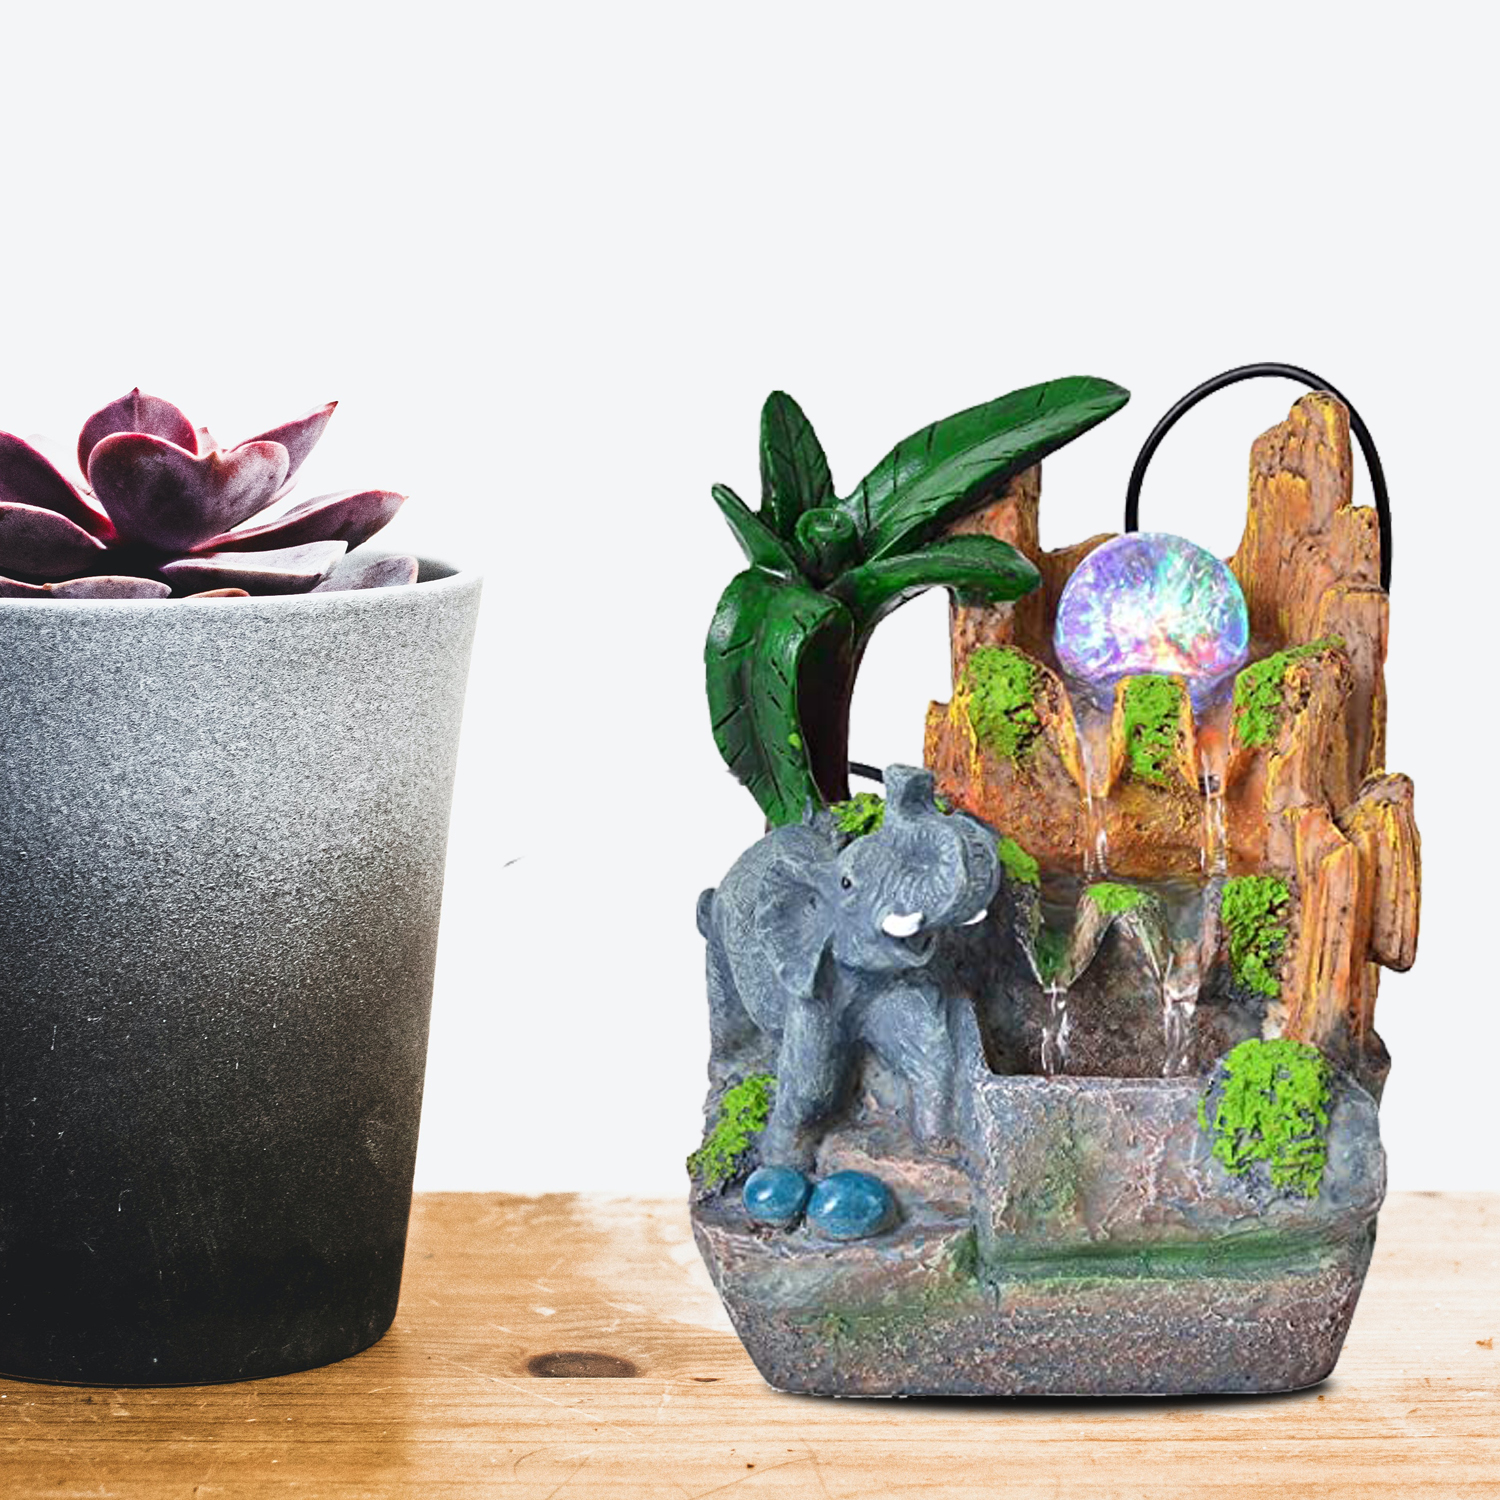 Shop LC Delivering Joy Tabletop Fountain Multi Color Jungle Water Fountain with LED Lights Glass Ball Flower Pot